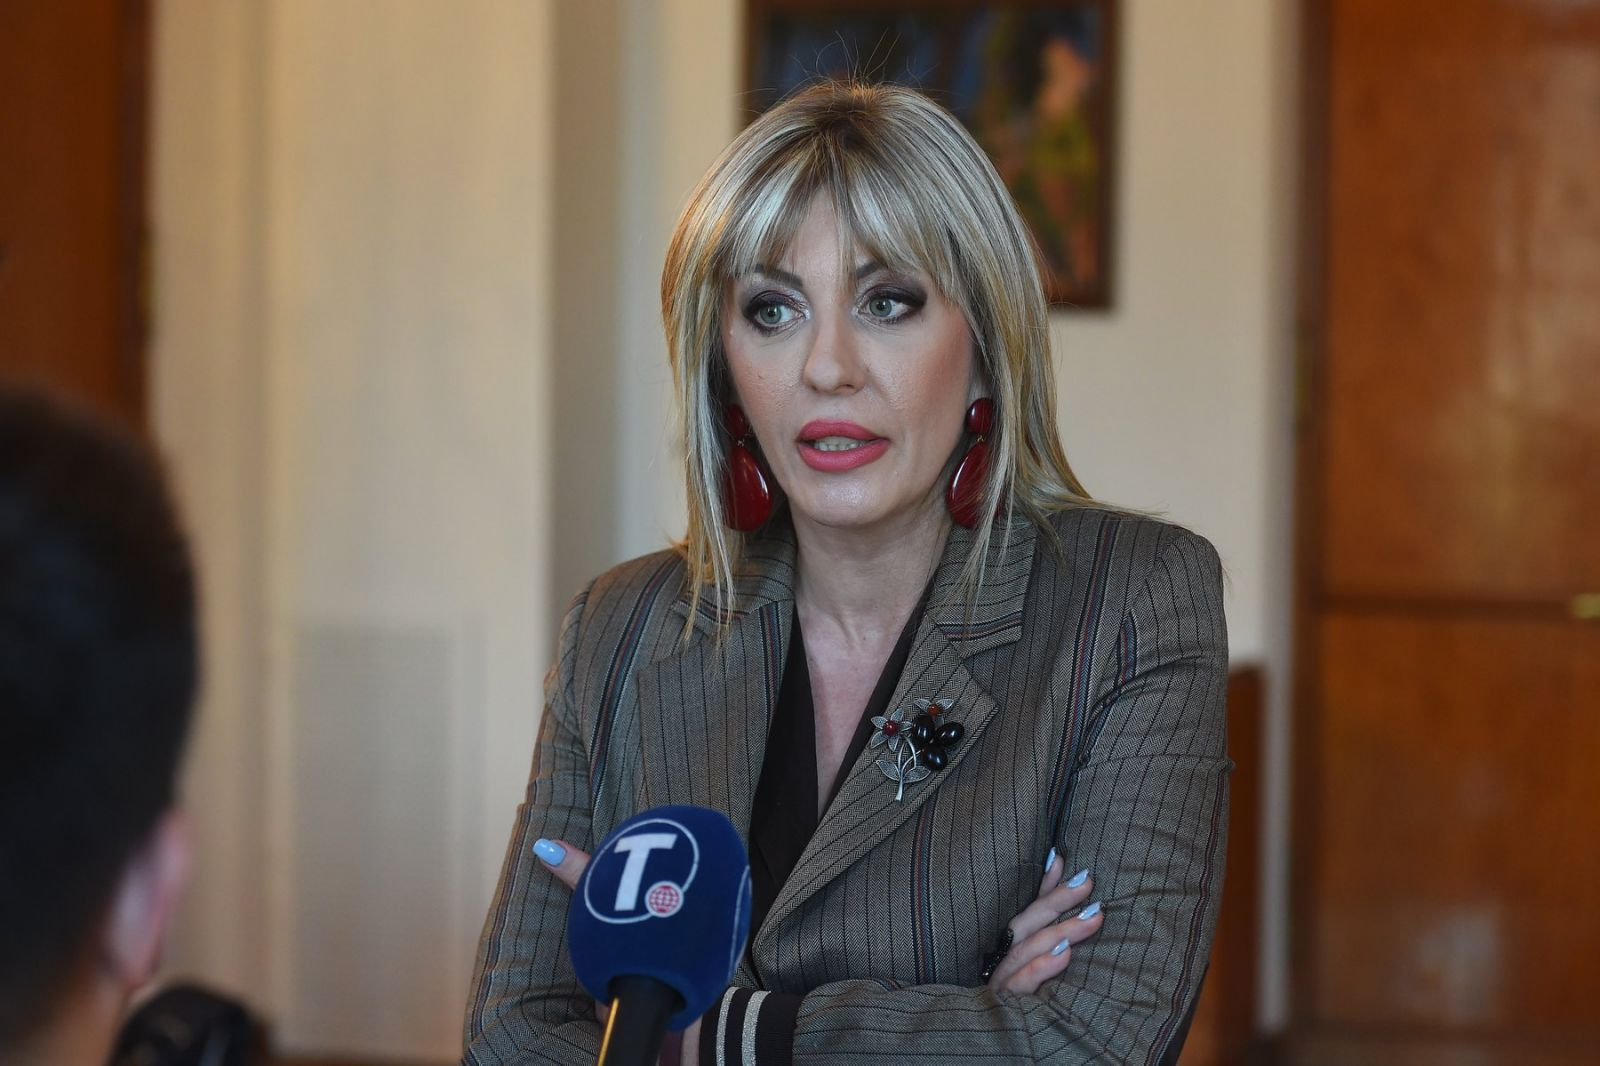 J. Joksimović: Third tranche of EU support for education sector